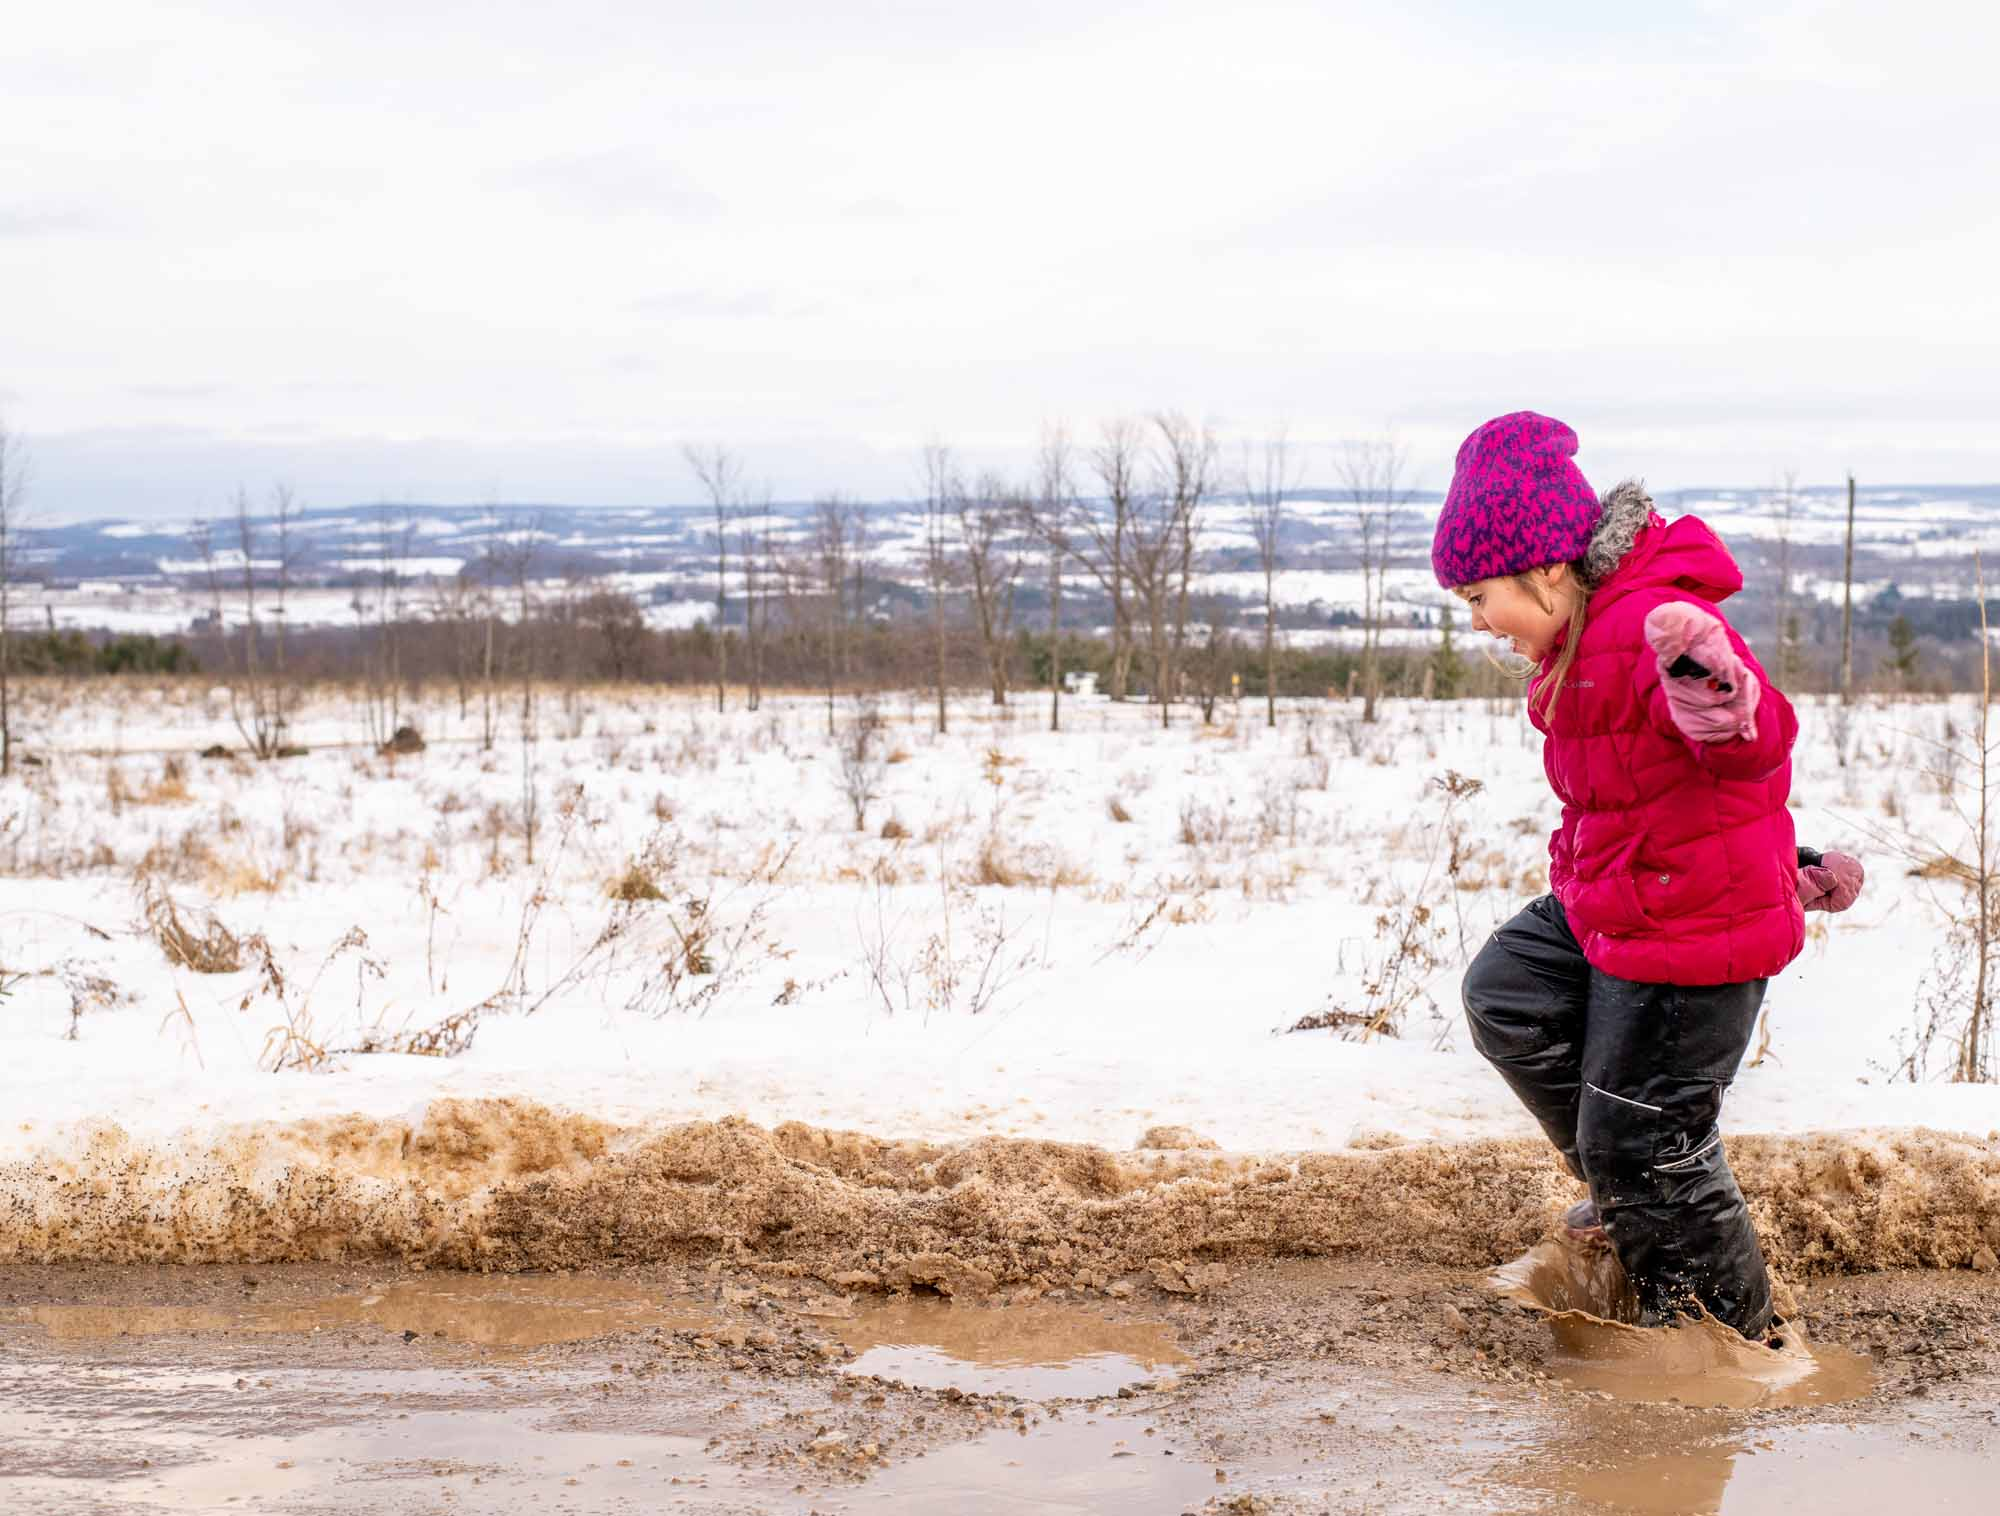 Nature-as-Teacher-Outdoor-Schools-Bring-Learning-Into-the-Elements-photo-by-Kristin-Schnelten-mud-puddles